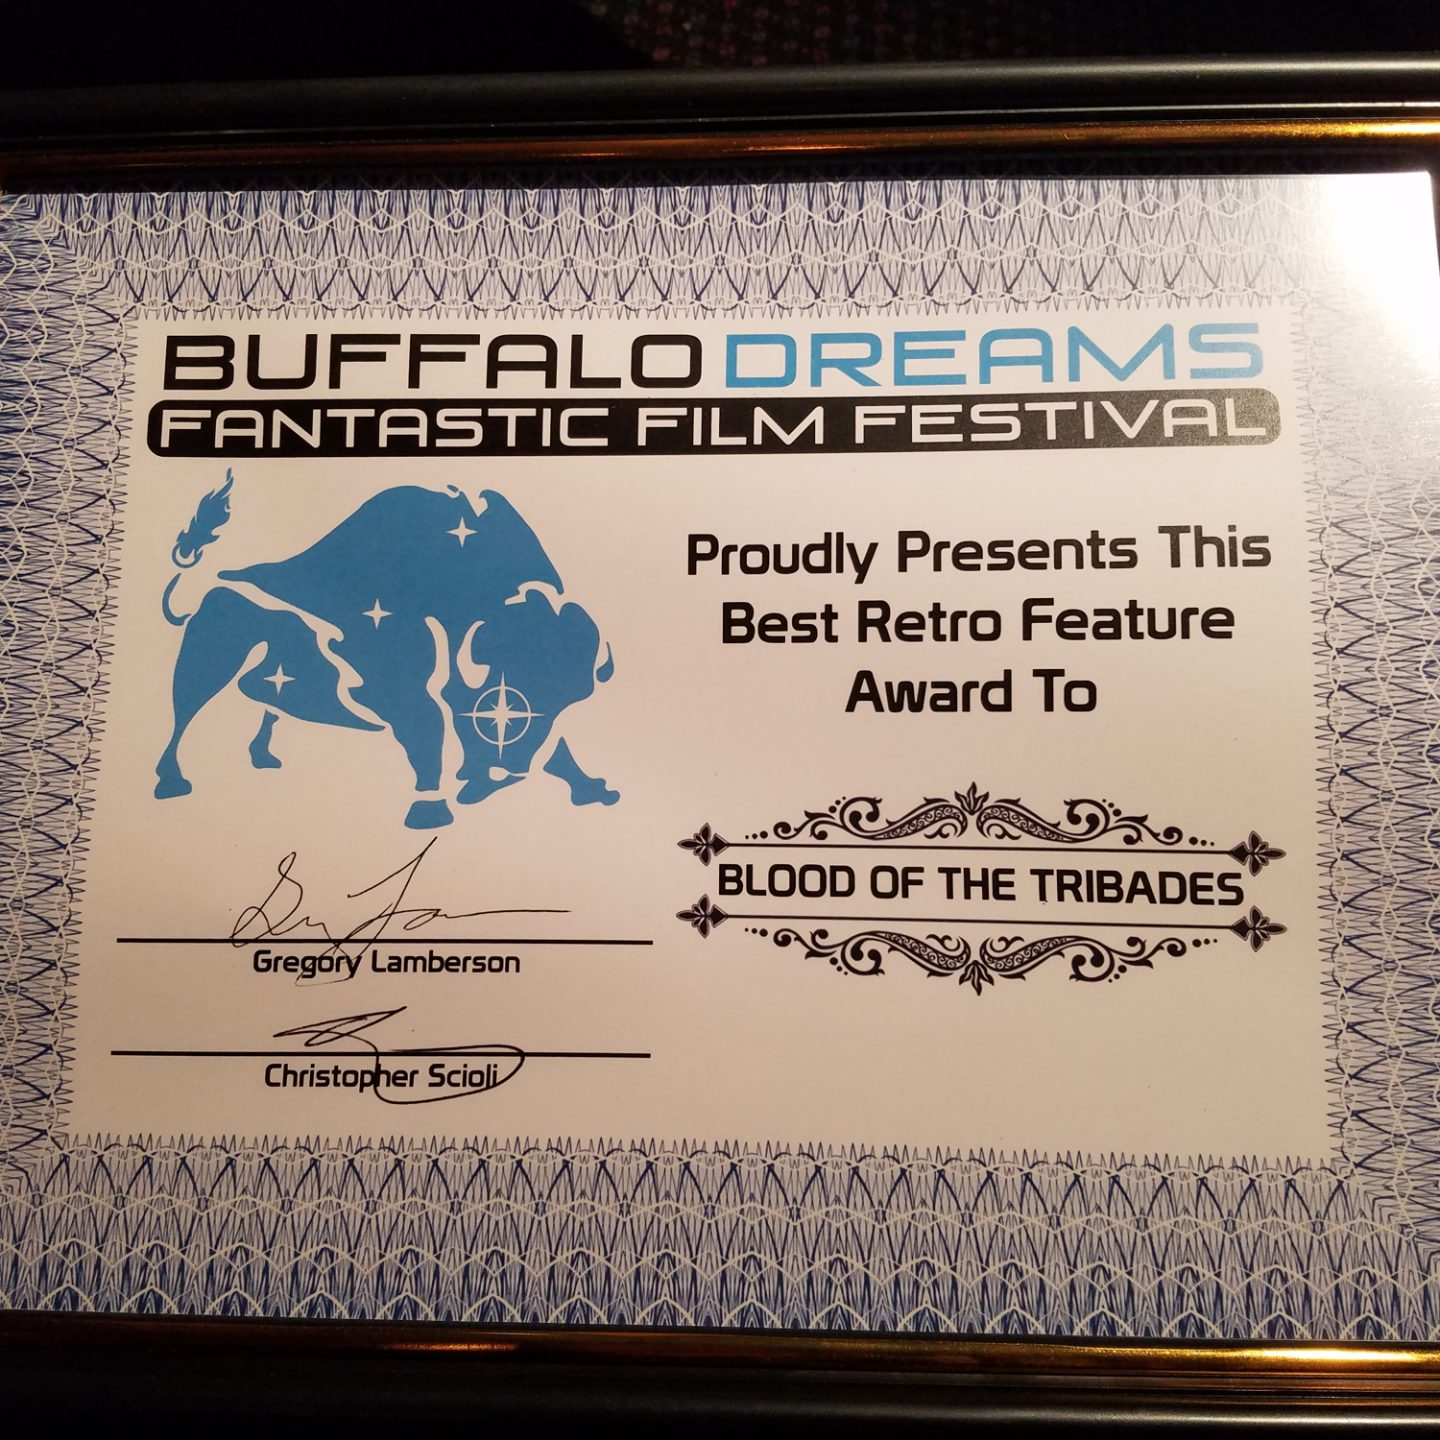 Blood of the Tribades wins Best Retro Feature at Buffalo Dreams Fantastic Film Festival on Monday, November 7th at Eastern Hills Cinema in Williamsville, New York (Sophia and Michael will be in attendance!)